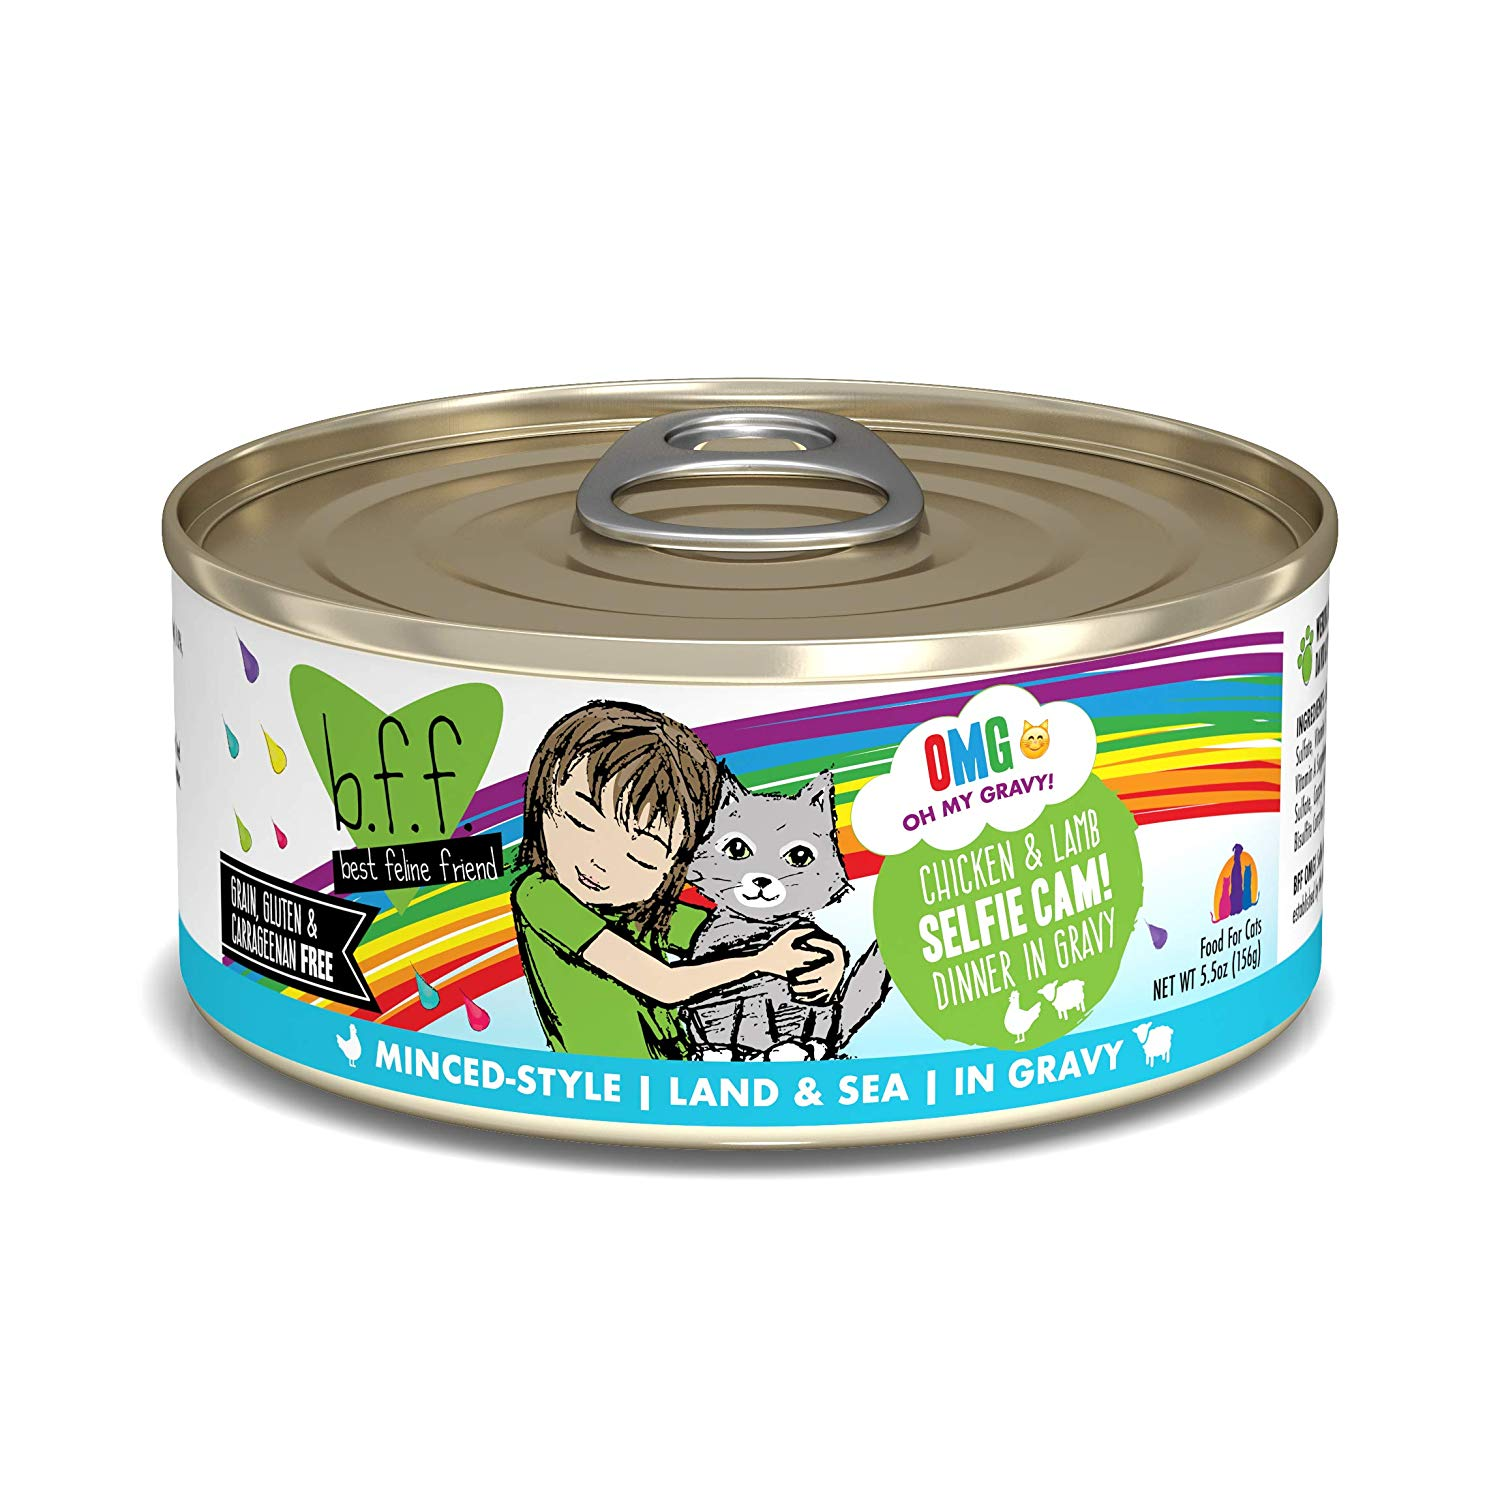 BFF Oh My Gravy! Selfie Cam! Chicken & Lamb Dinner in Gravy Grain-Free Wet Cat Food, 5.5-oz